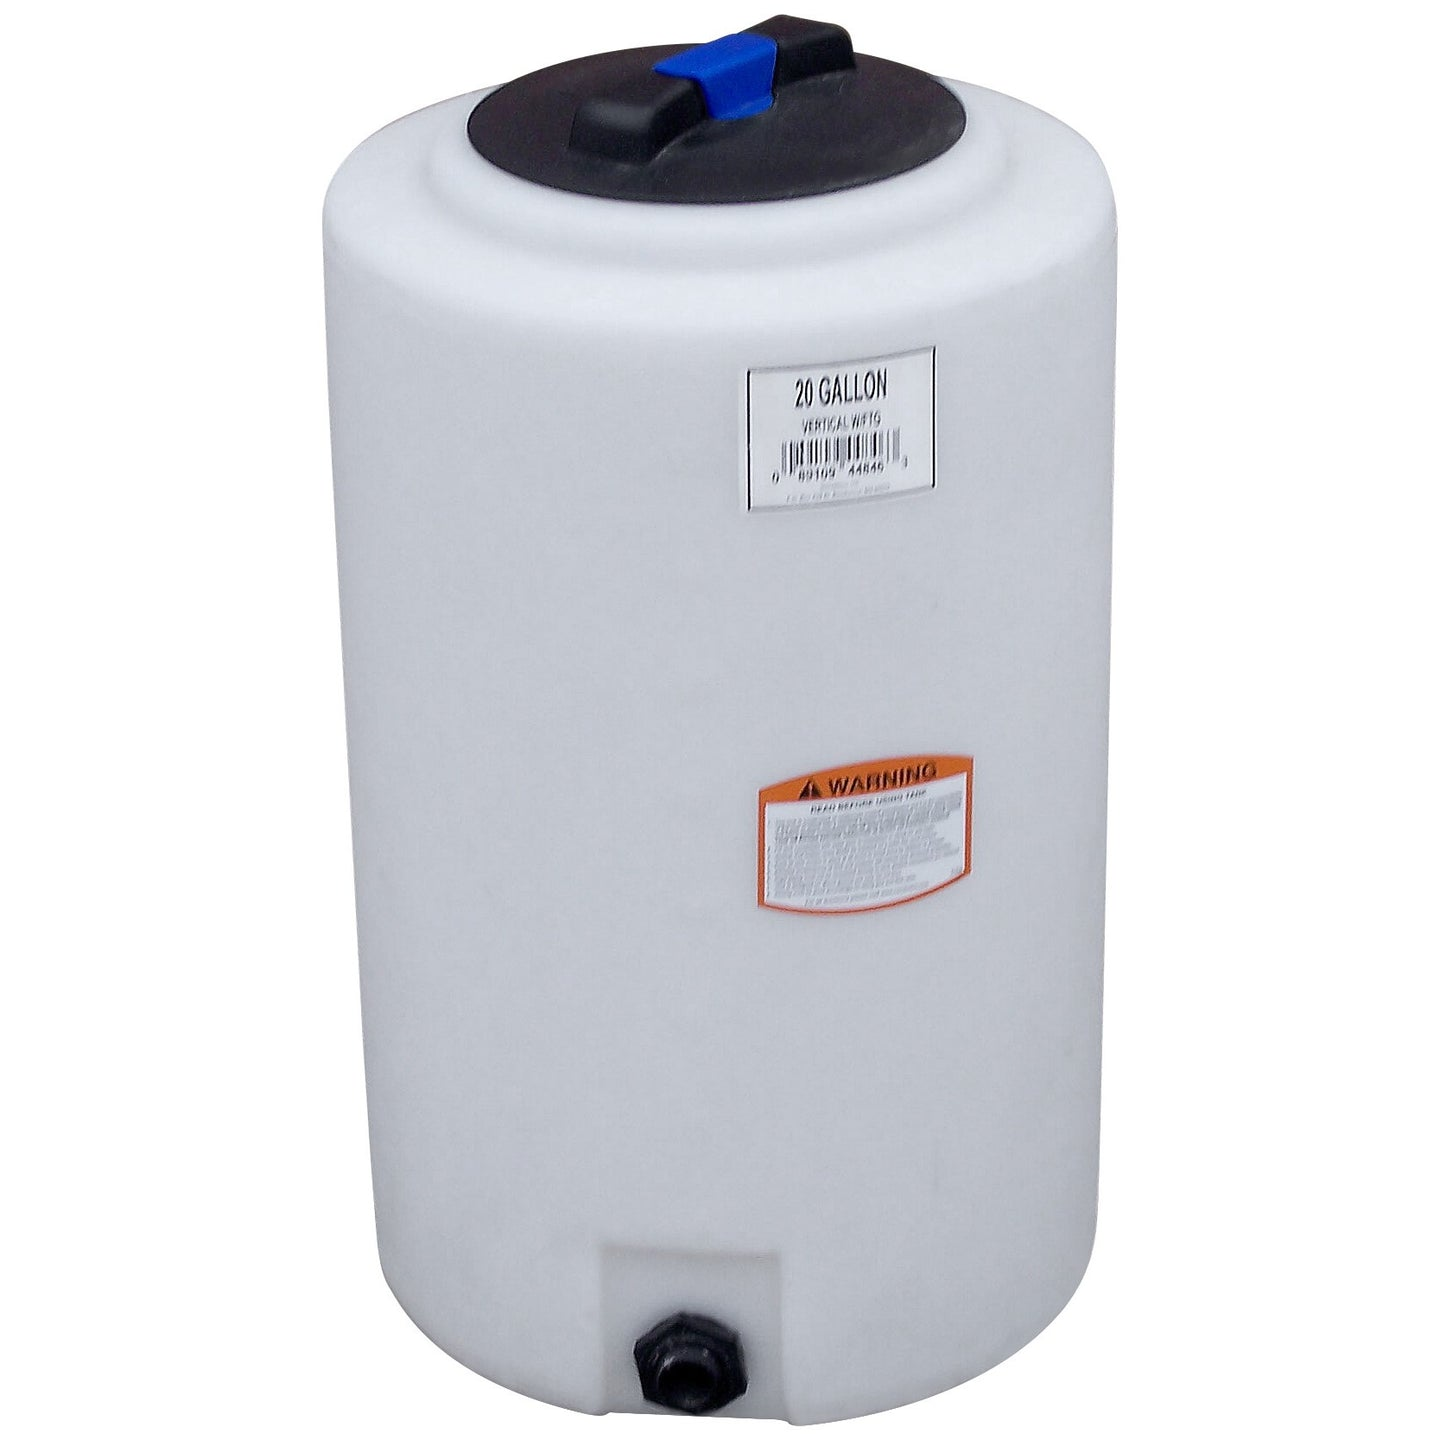 20 Gallon Flat Bottom Vertical Cylinder Water Storage and Salt Mixing Tank with Gallon Indicators, Threaded Lid, and Optional 3/4